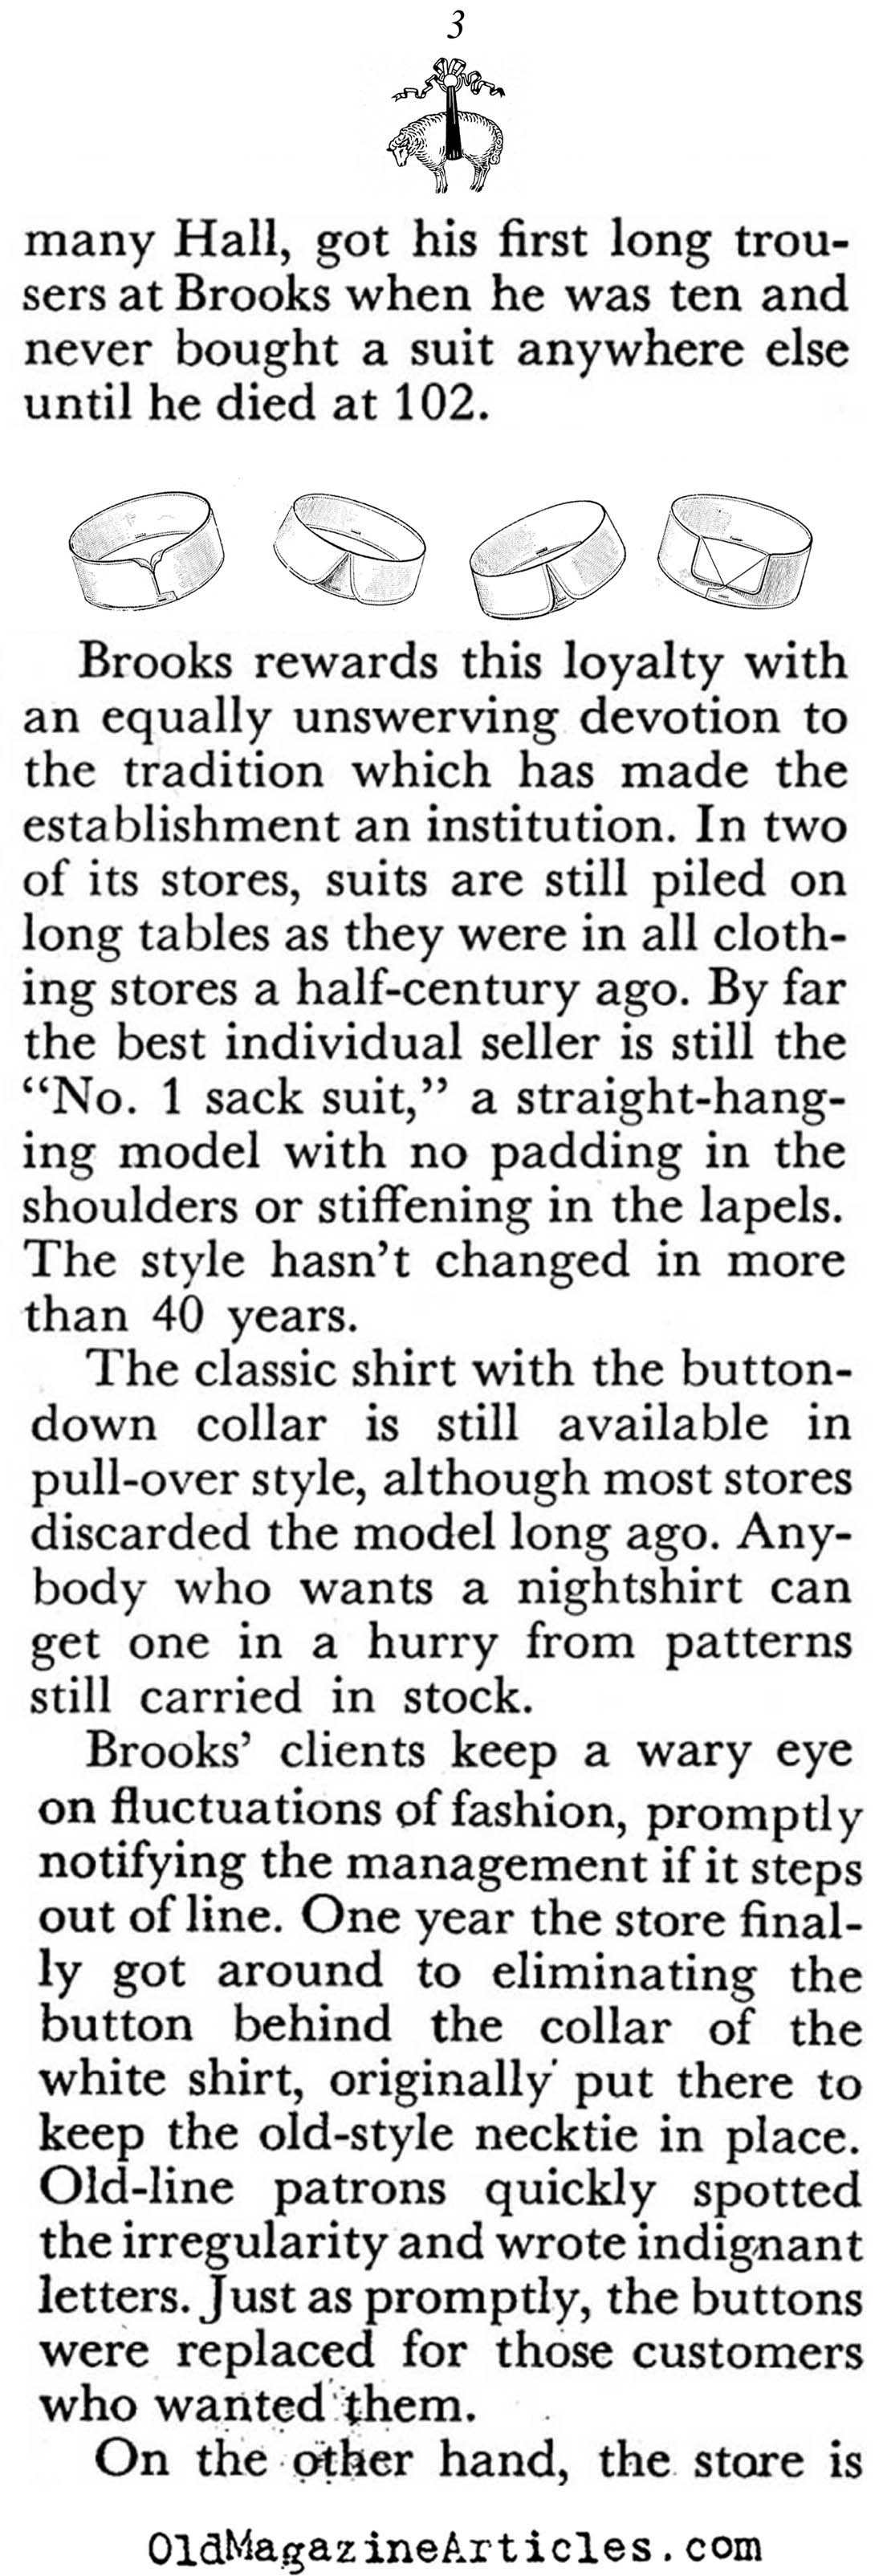 A History of Brooks Brothers (Coronet Magazine, 1950)